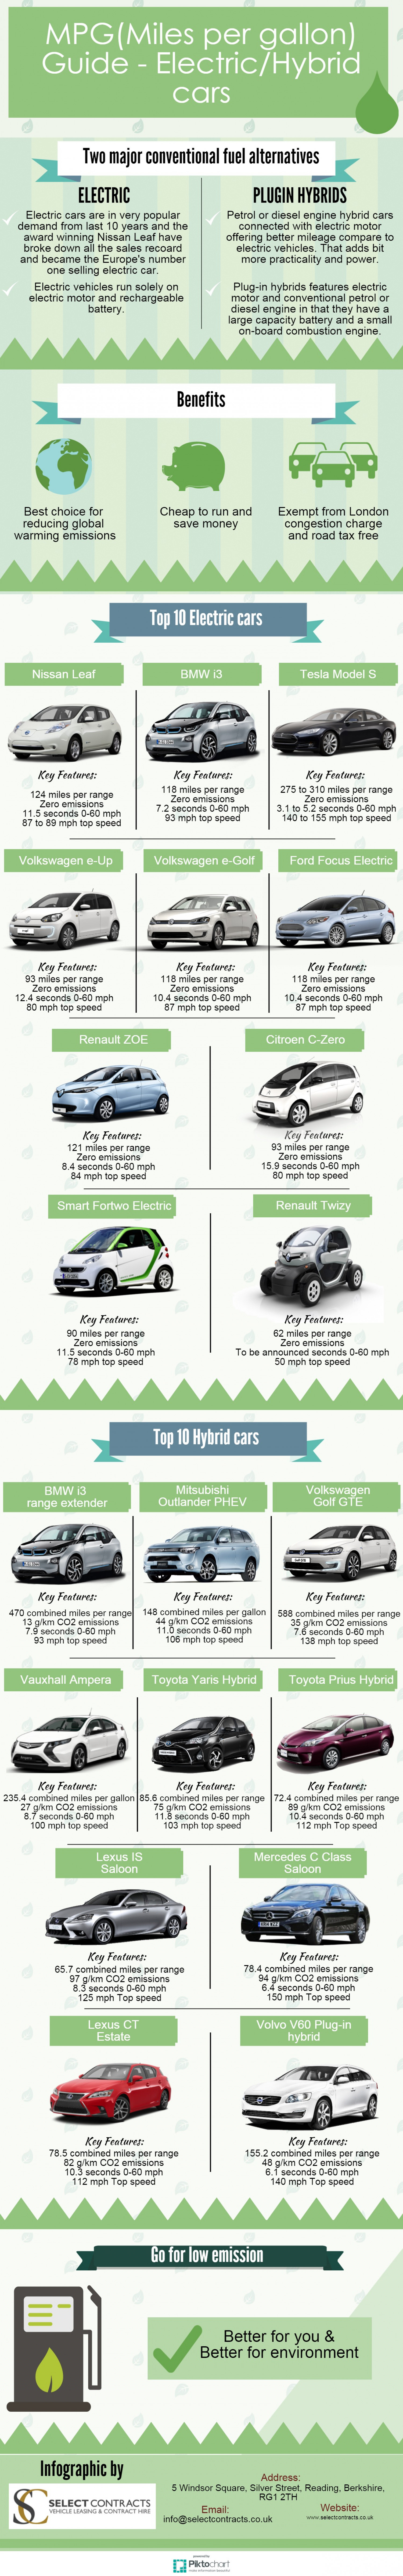 Mpg Miles Per Gallon Guide Electric Hybrid Cars Infographic